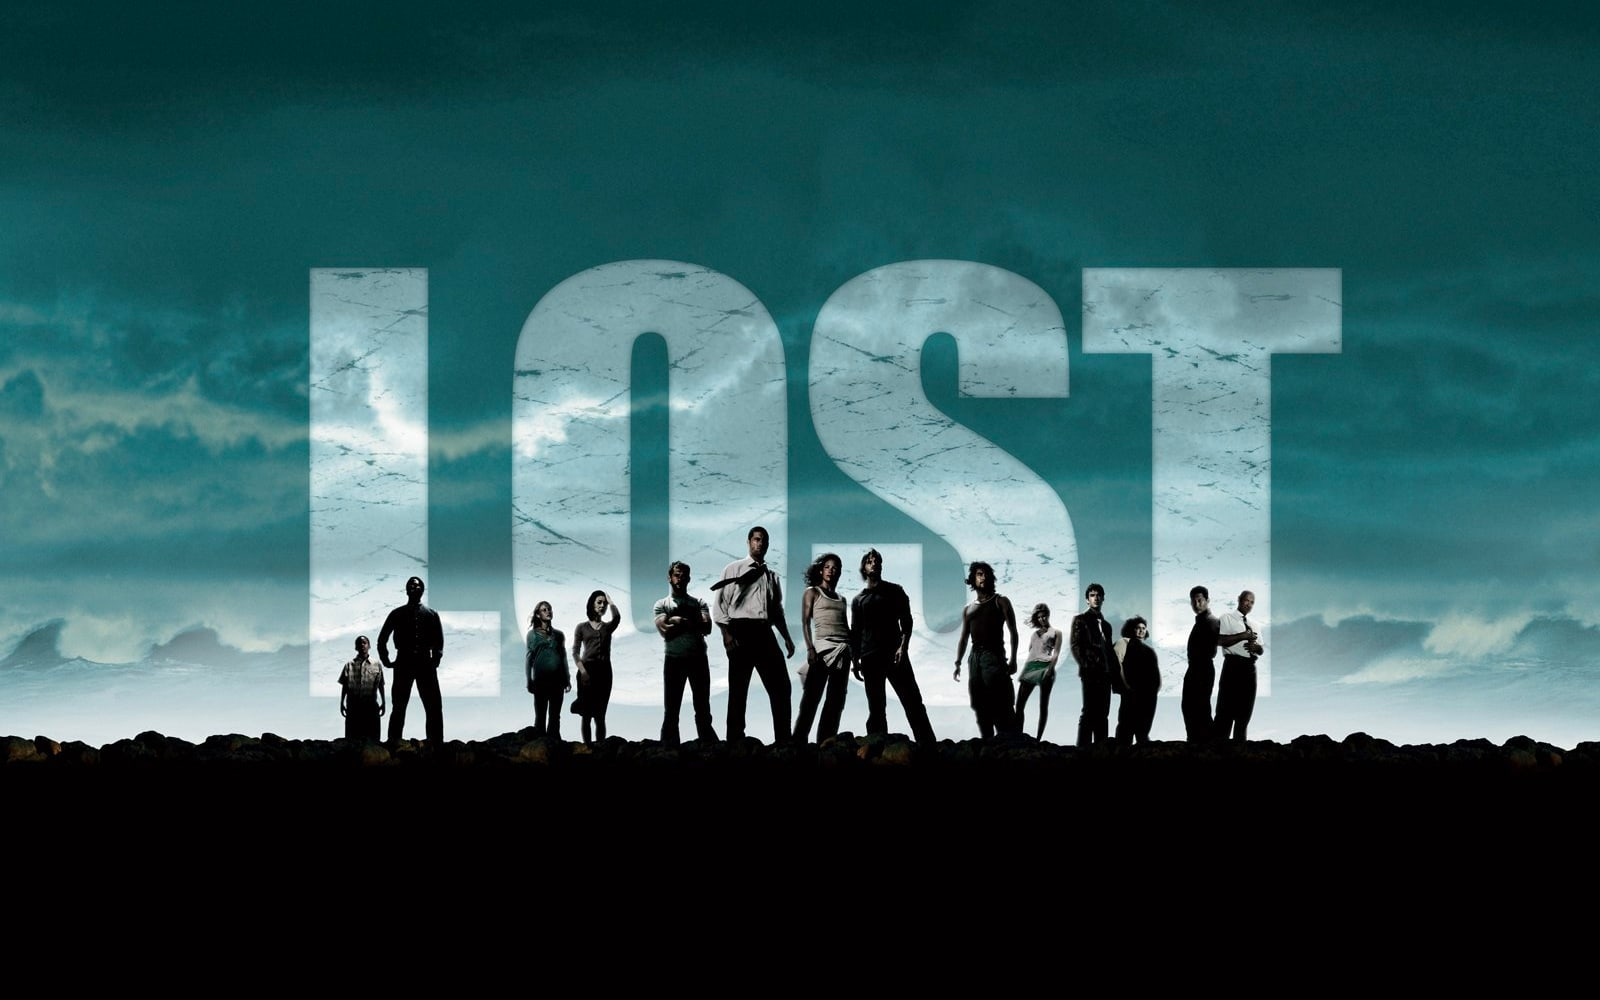 How Survivor inspired Lost, which stole its name from yet another reality series